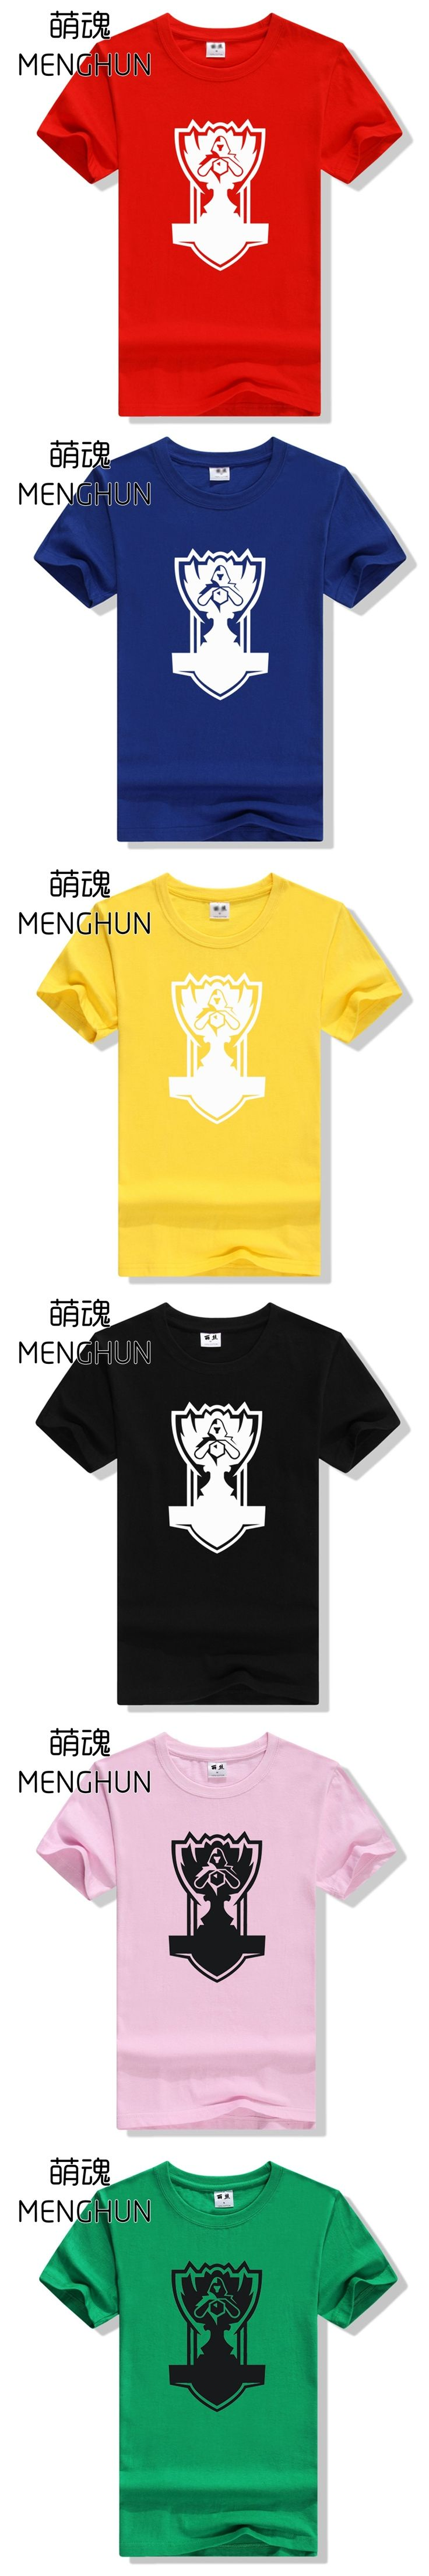 LOL S series championship cup design new concept tee shirt full cotton material LOL t shirts